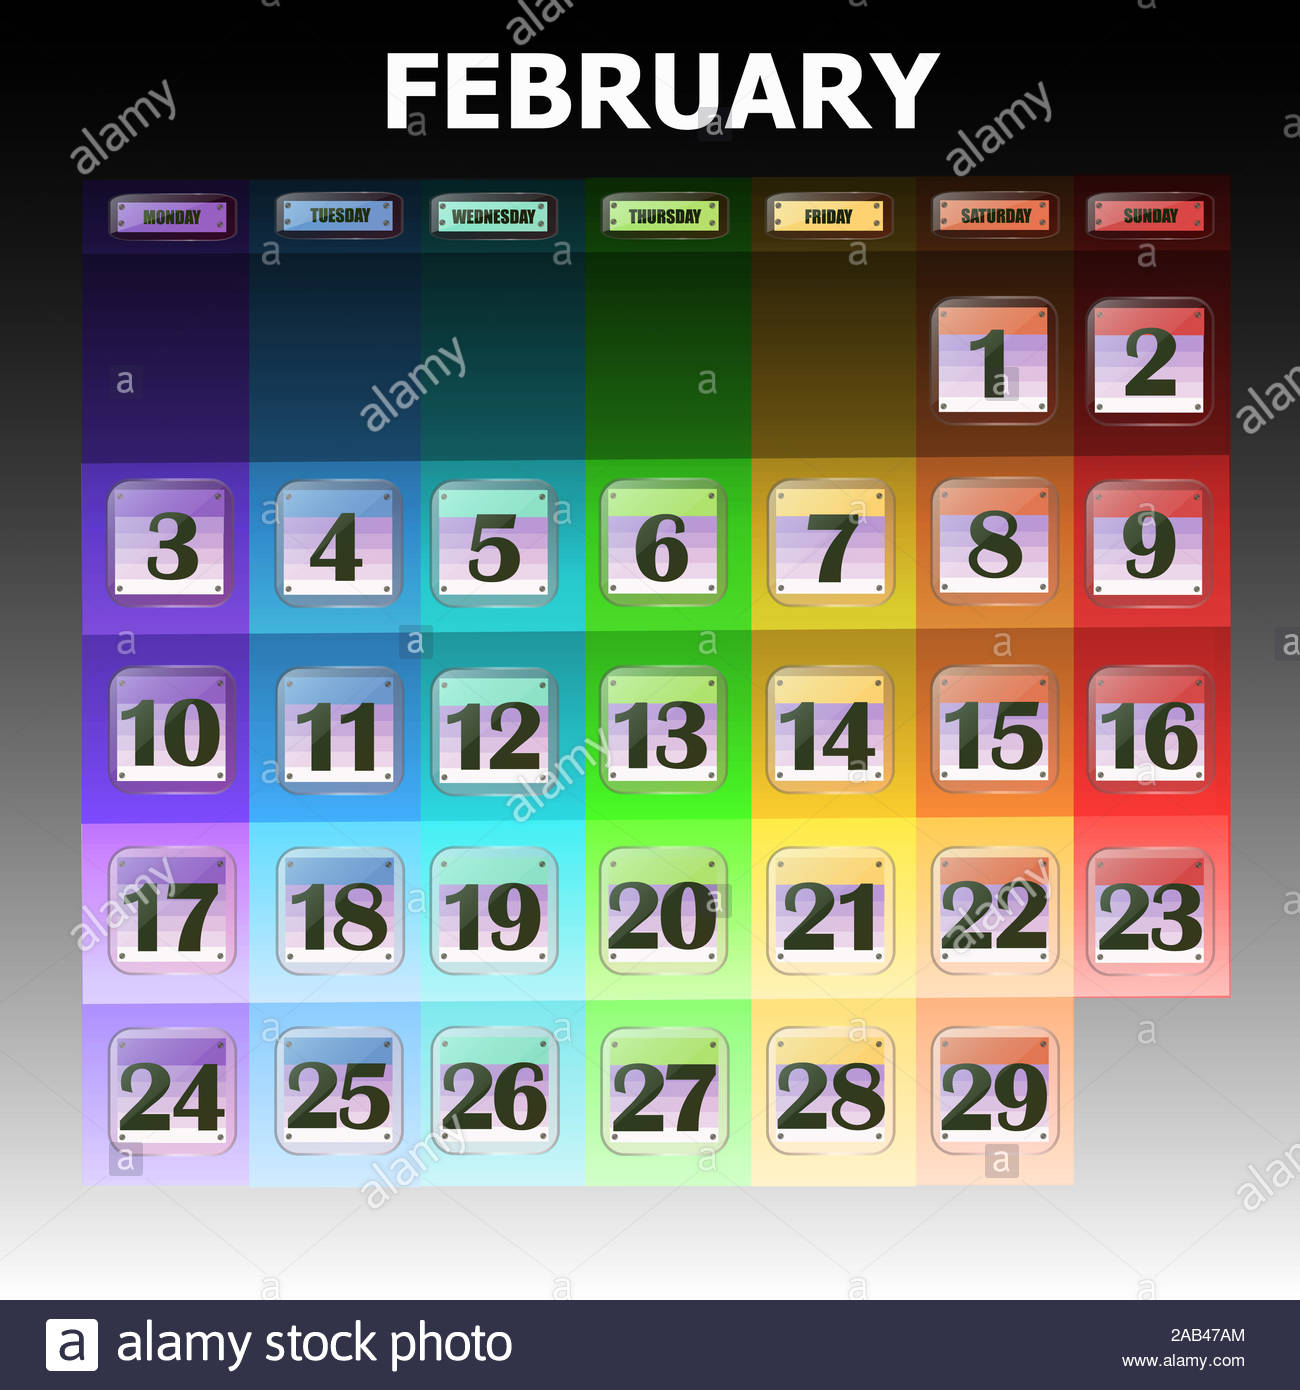 Colorful Calendar For February 2020 In English. Set Of